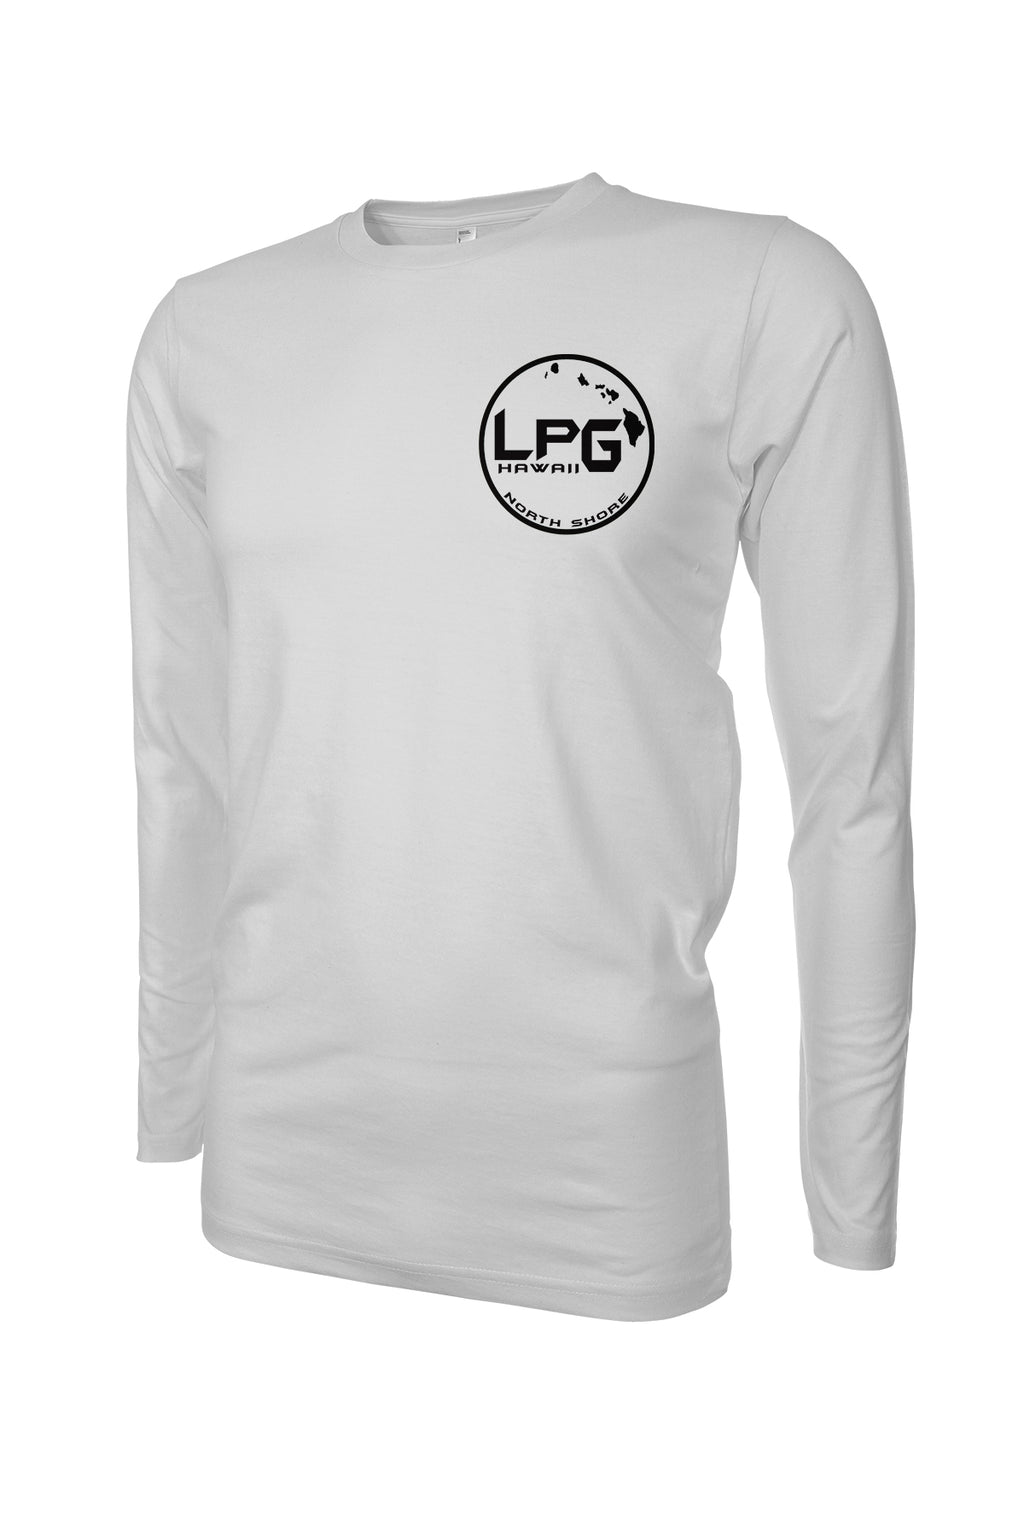 lobo-sportfishing - LPG Apparel Co. Hawaii North Shore Surf UPF 50+ Rashguard Performance Shirt - LPG Apparel Co. - Performance Gear